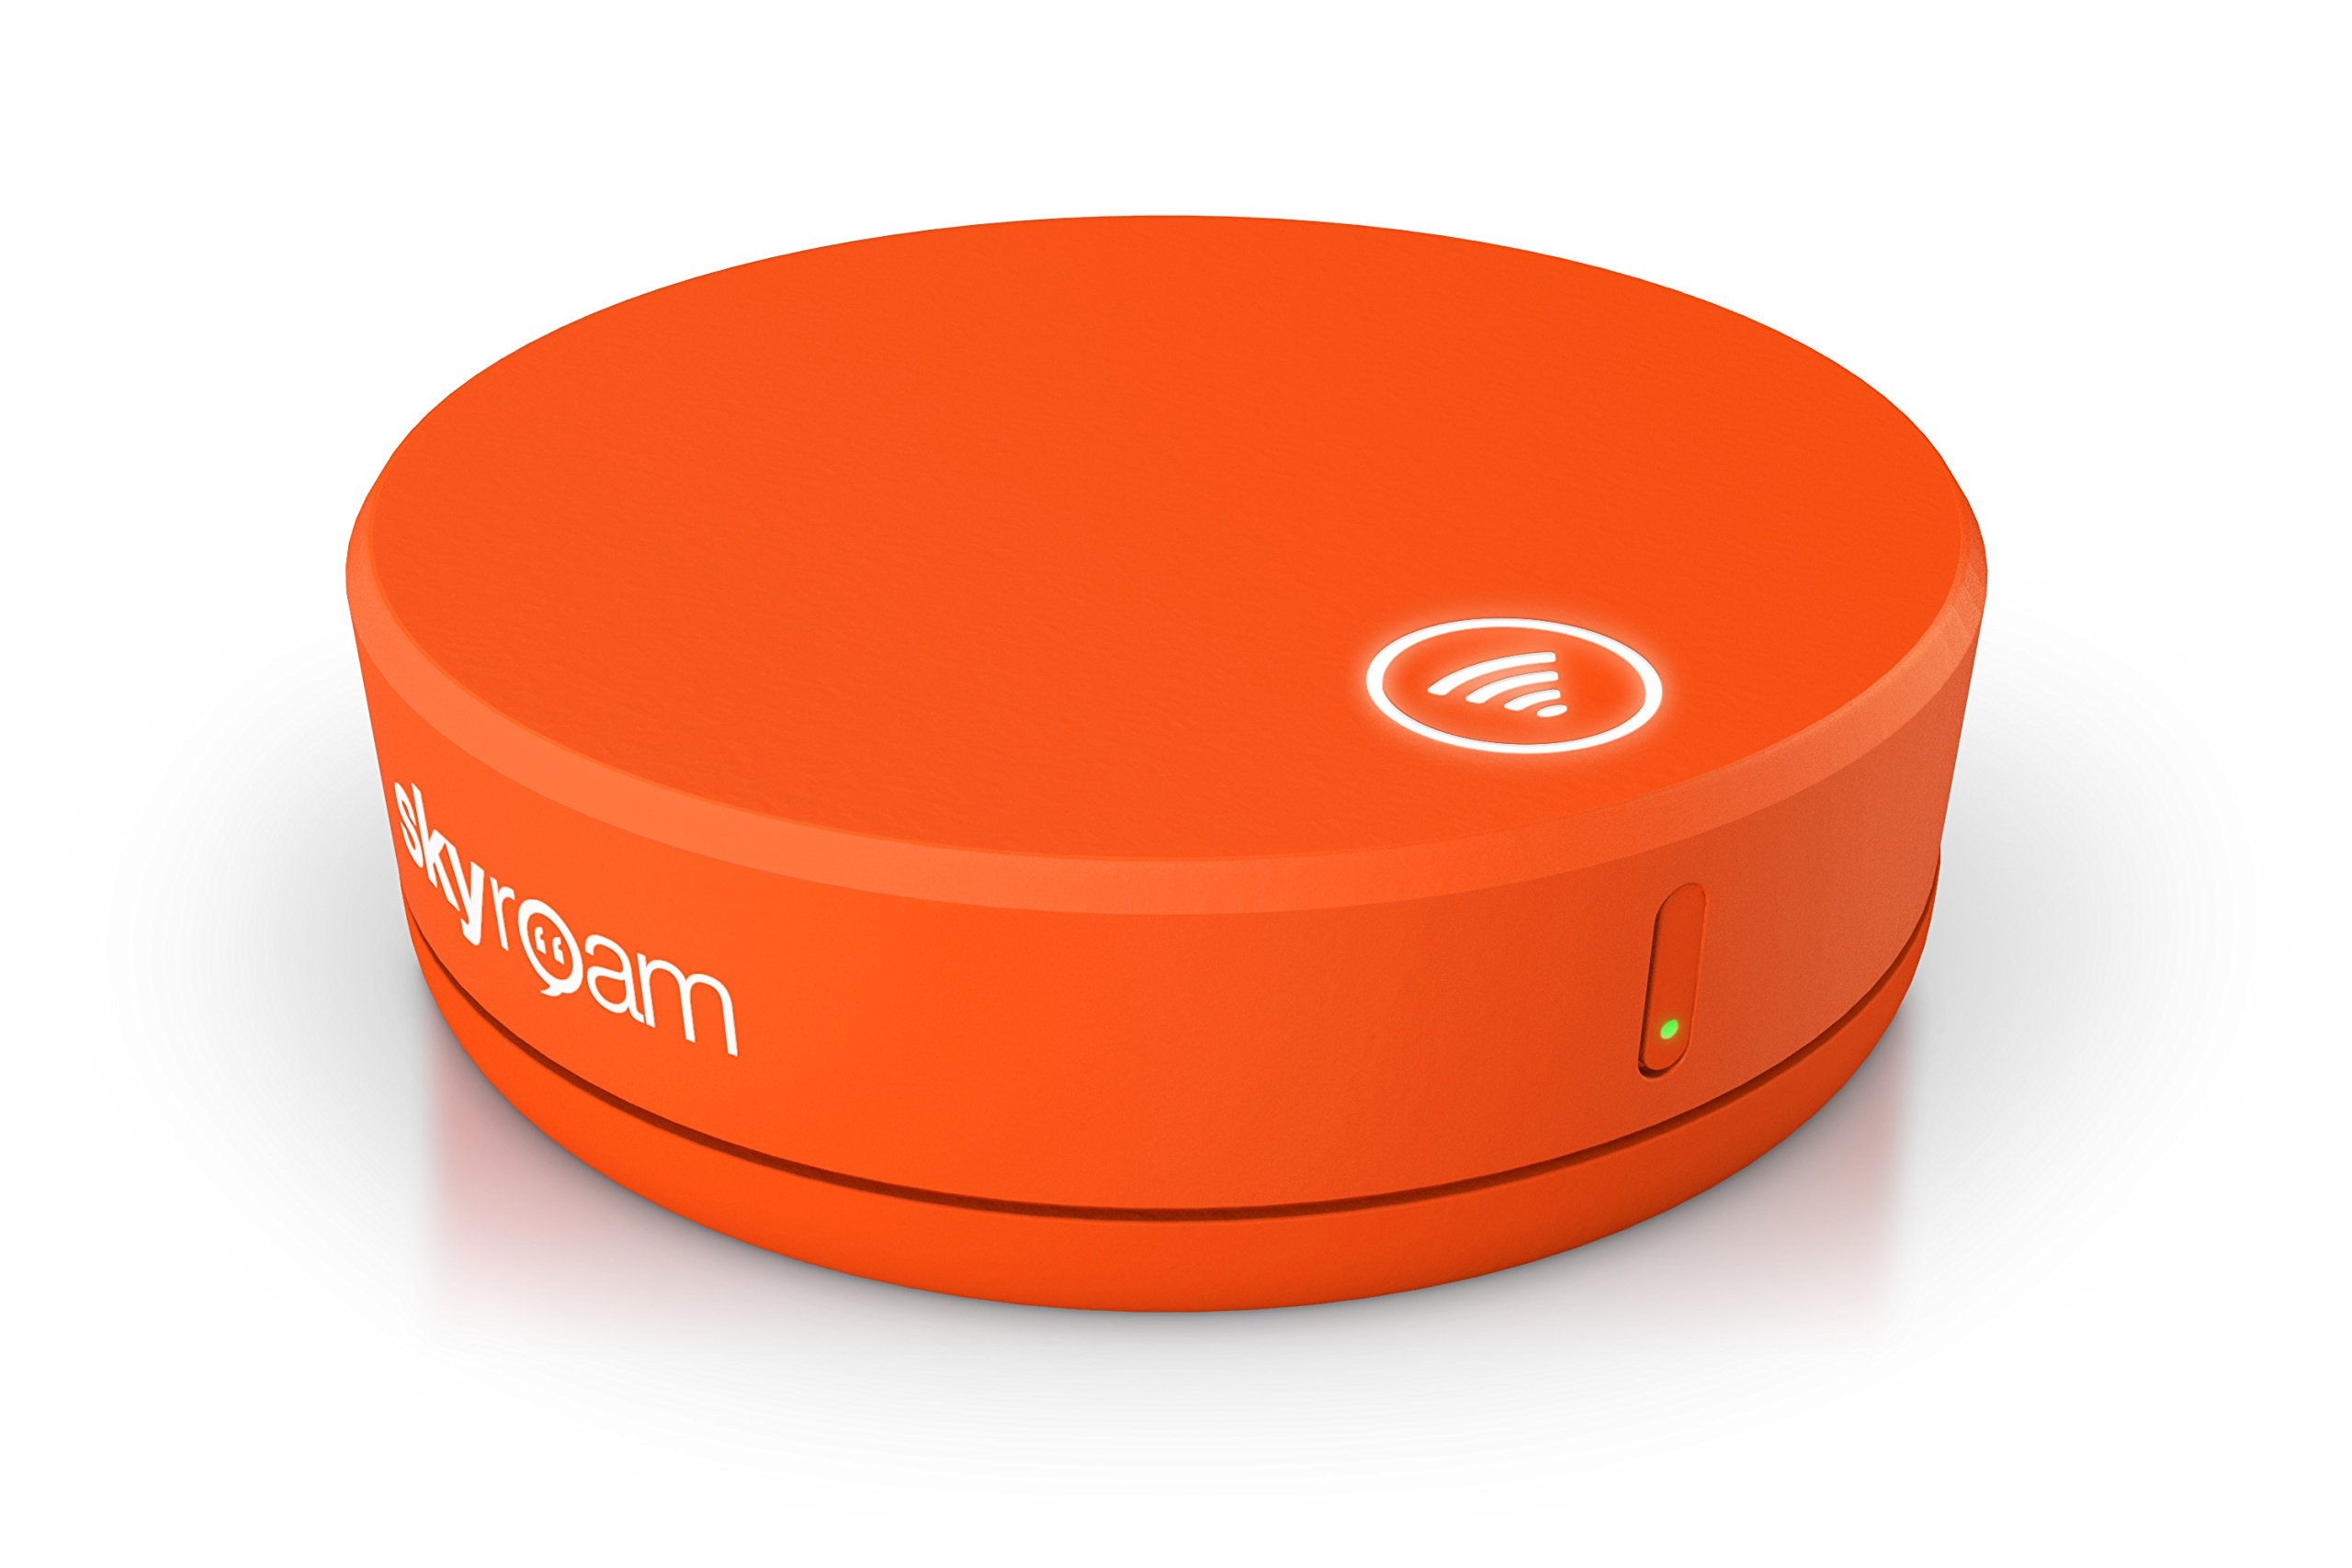 Skyroam Solis: Mobile WiFi Hotspot & Power Bank + 1-Year GoData Data Subscription // Global SIM-Free 4G LTE // Pay-as-You-go // Coverage in 130+ Countries ... by Skyroam